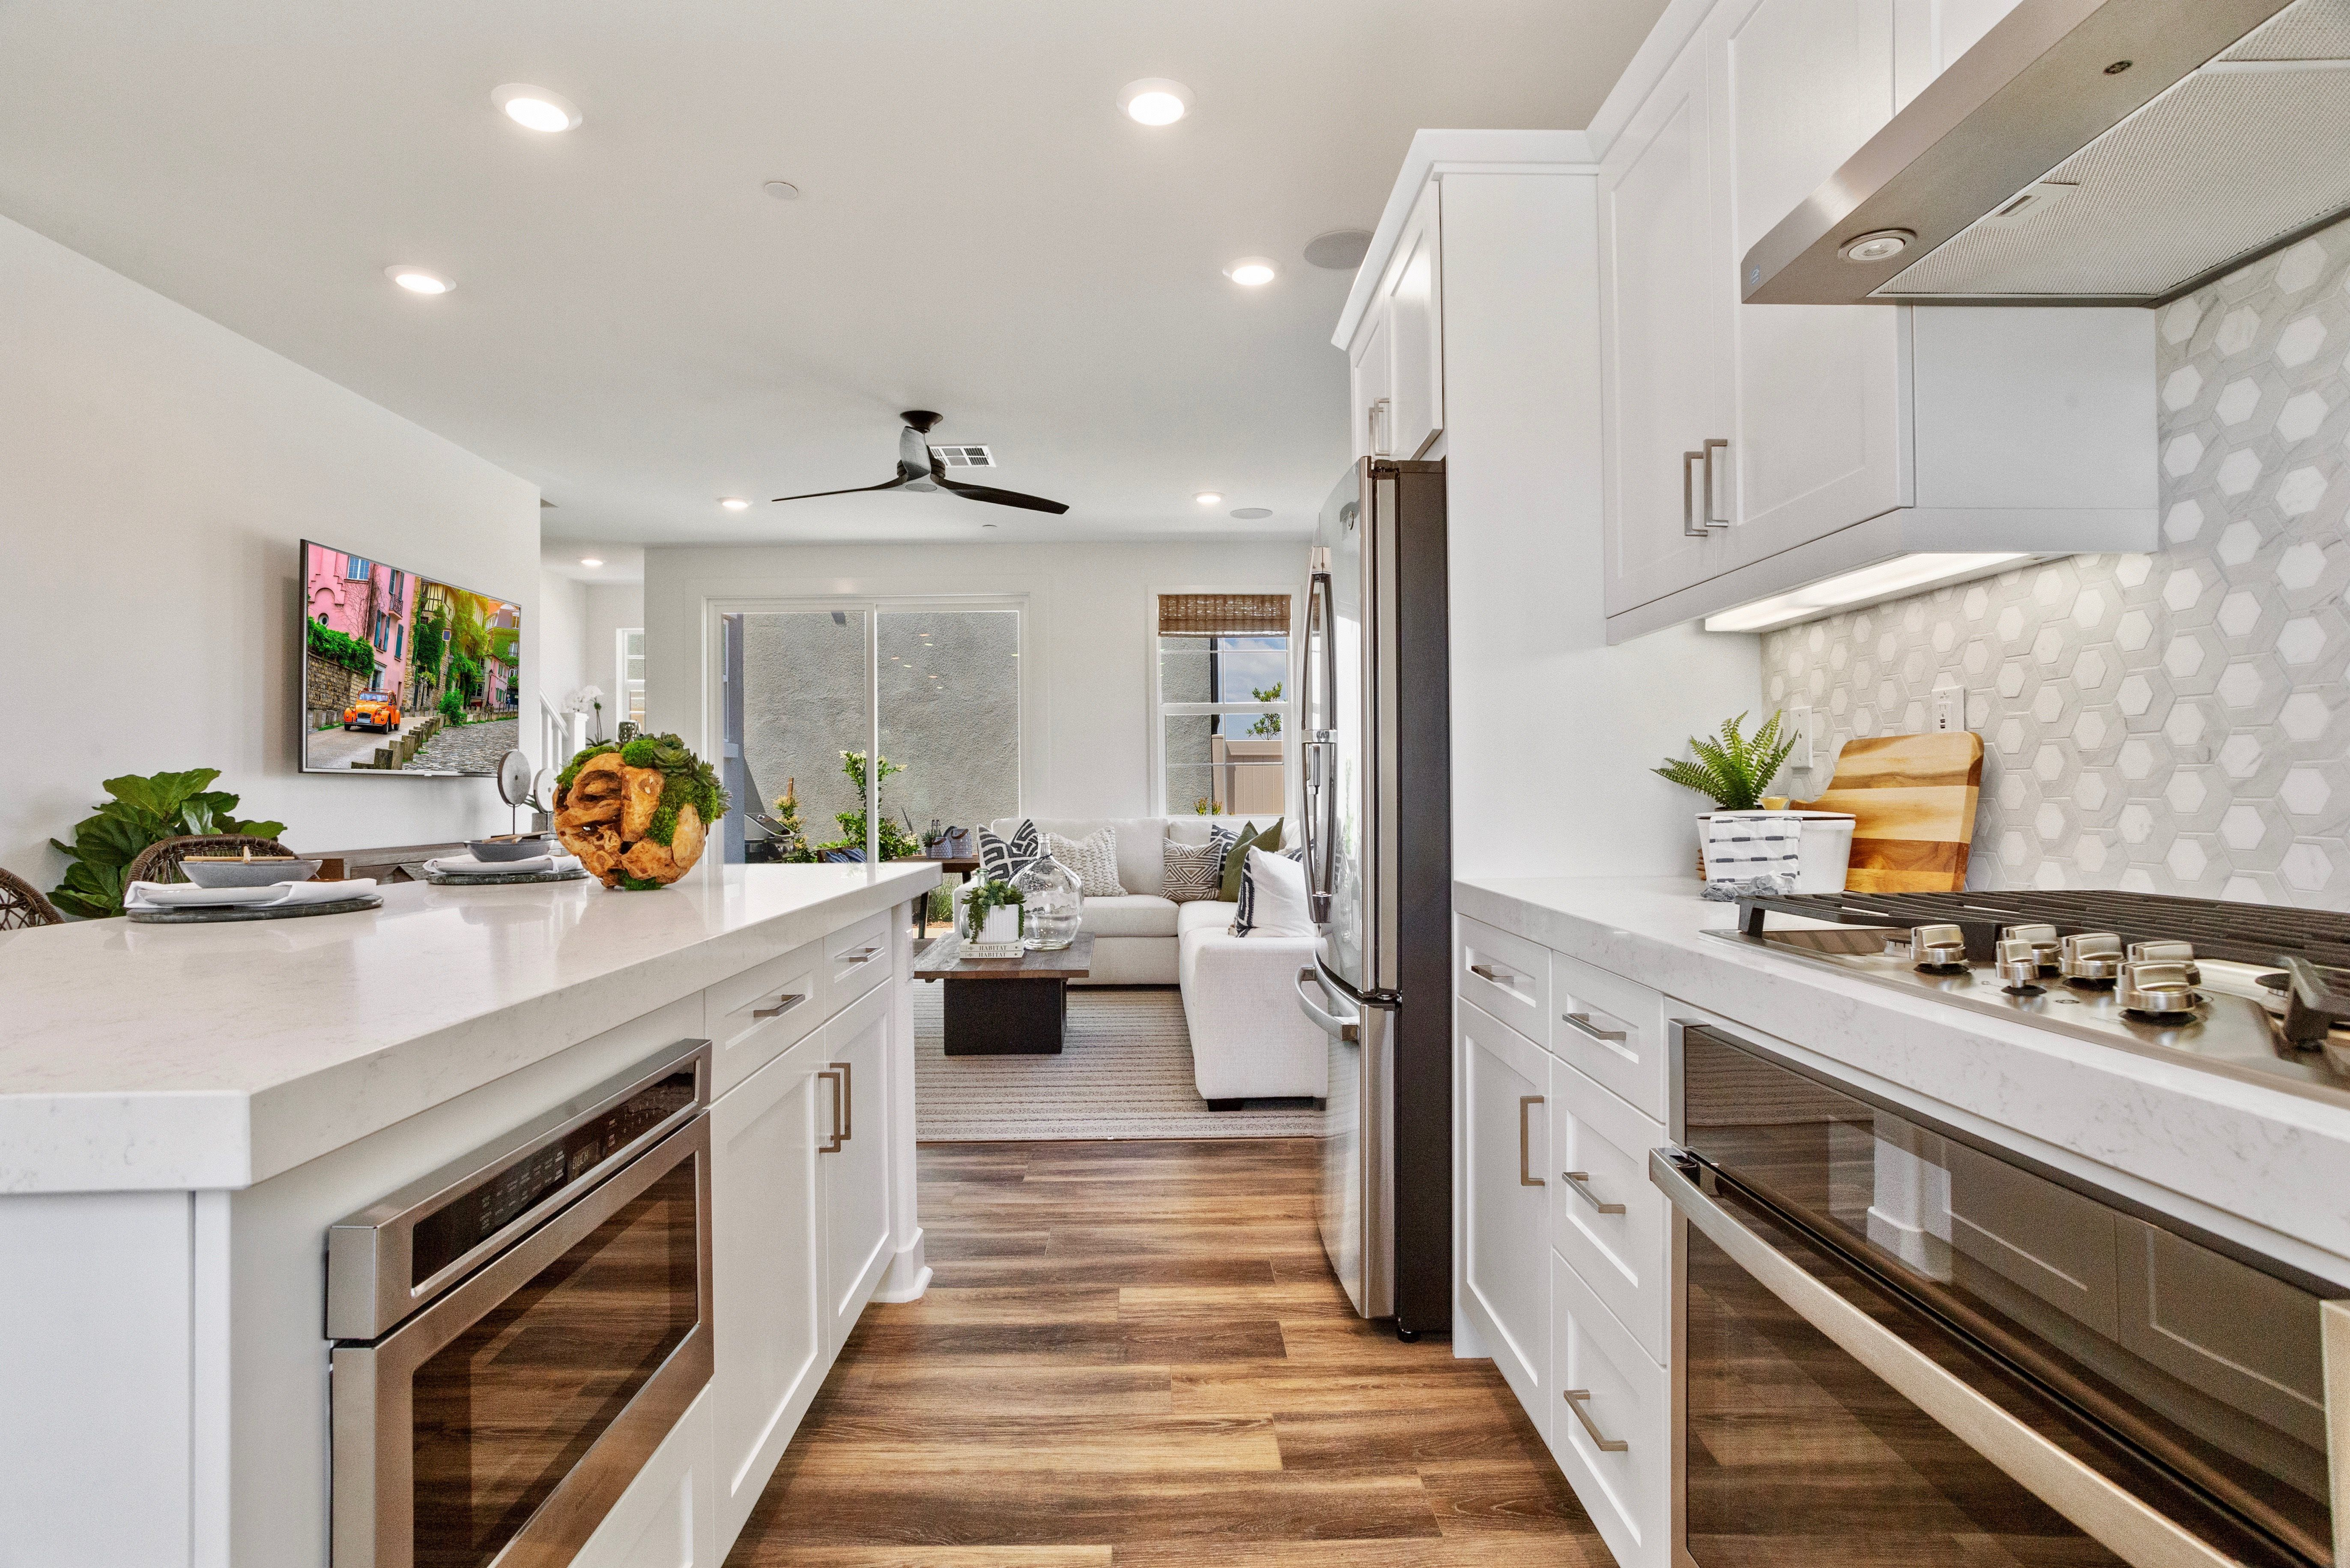 Kitchen featured in the Residence 2 By Lennar in Los Angeles, CA